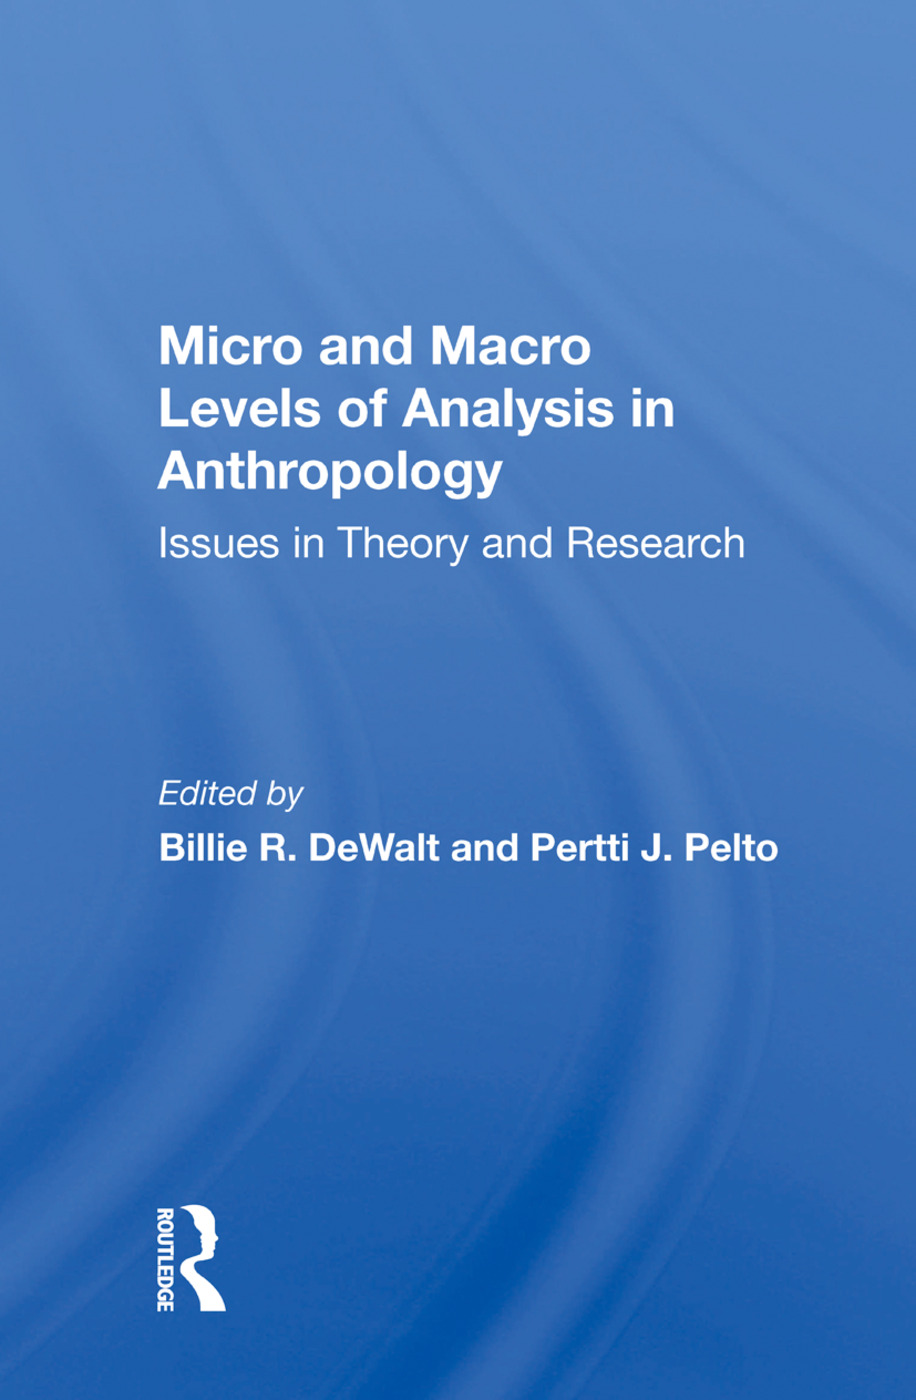 Micro And Macro Levels Of Analysis In Anthropology: Issues In Theory And Research book cover